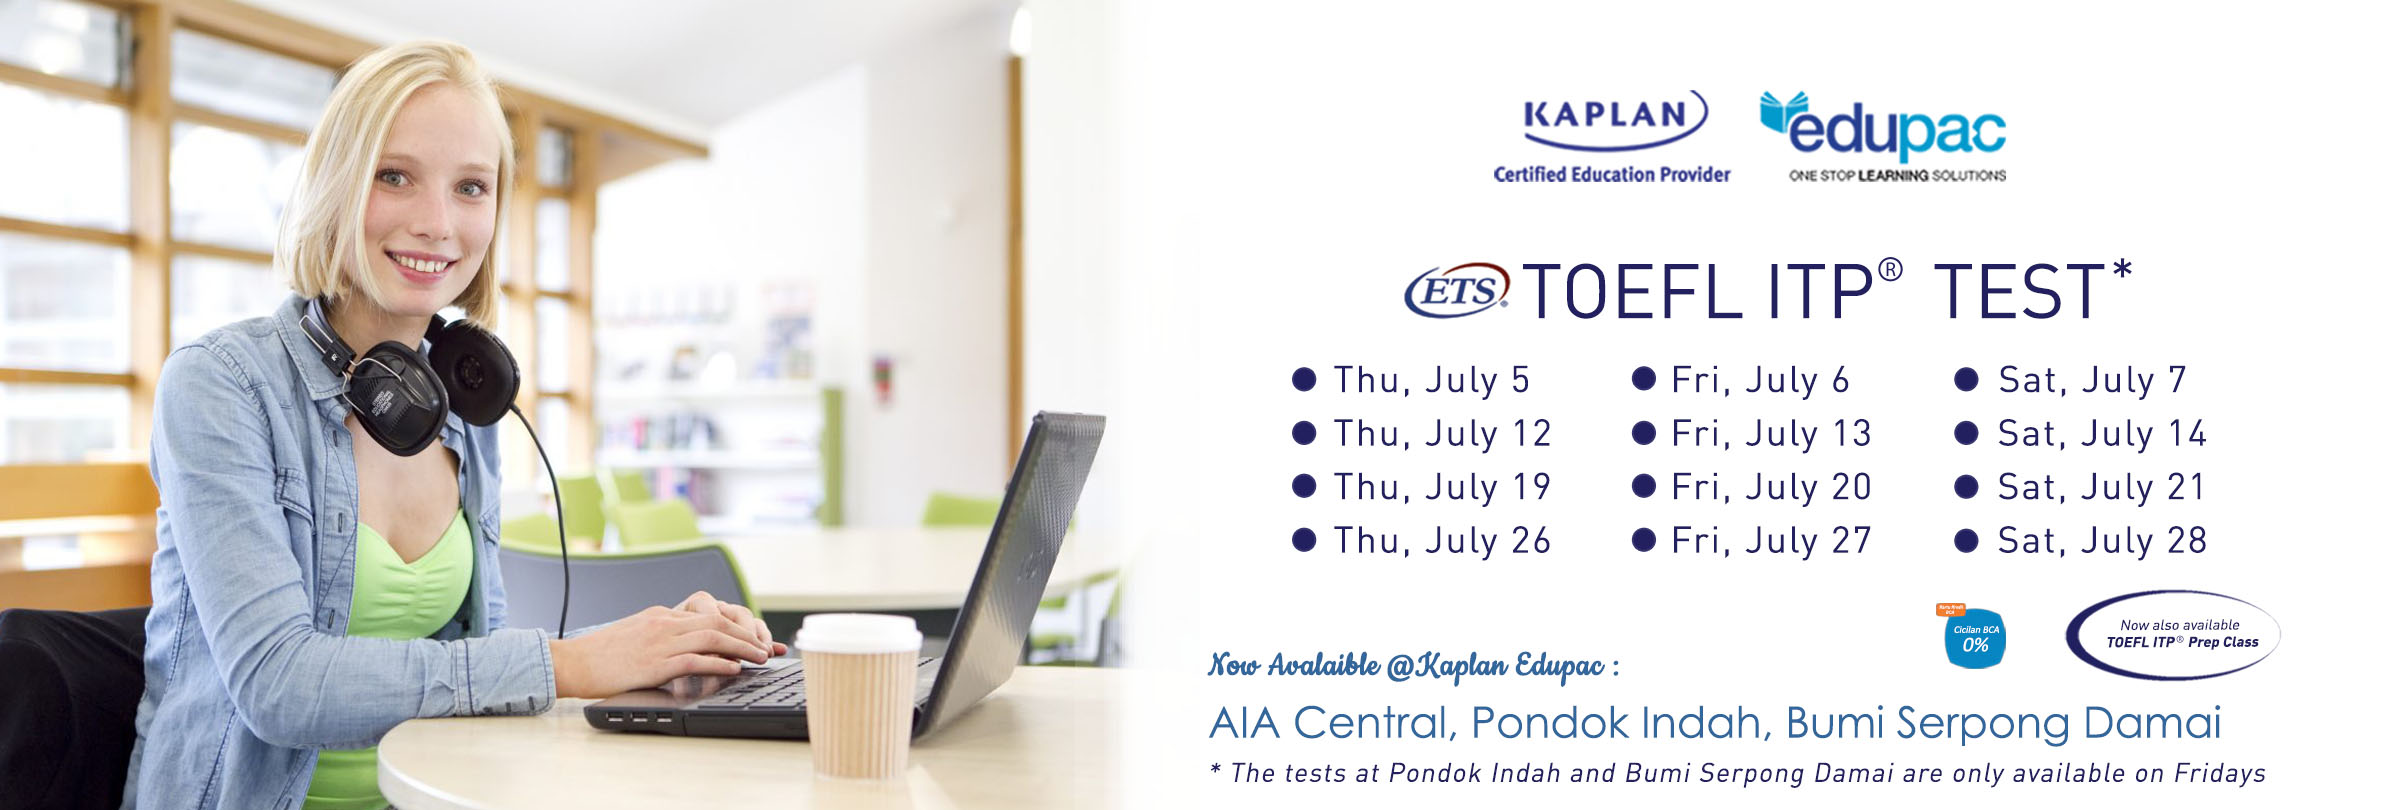 Jakarta TOEFL ITP Test Schedule for July 2018